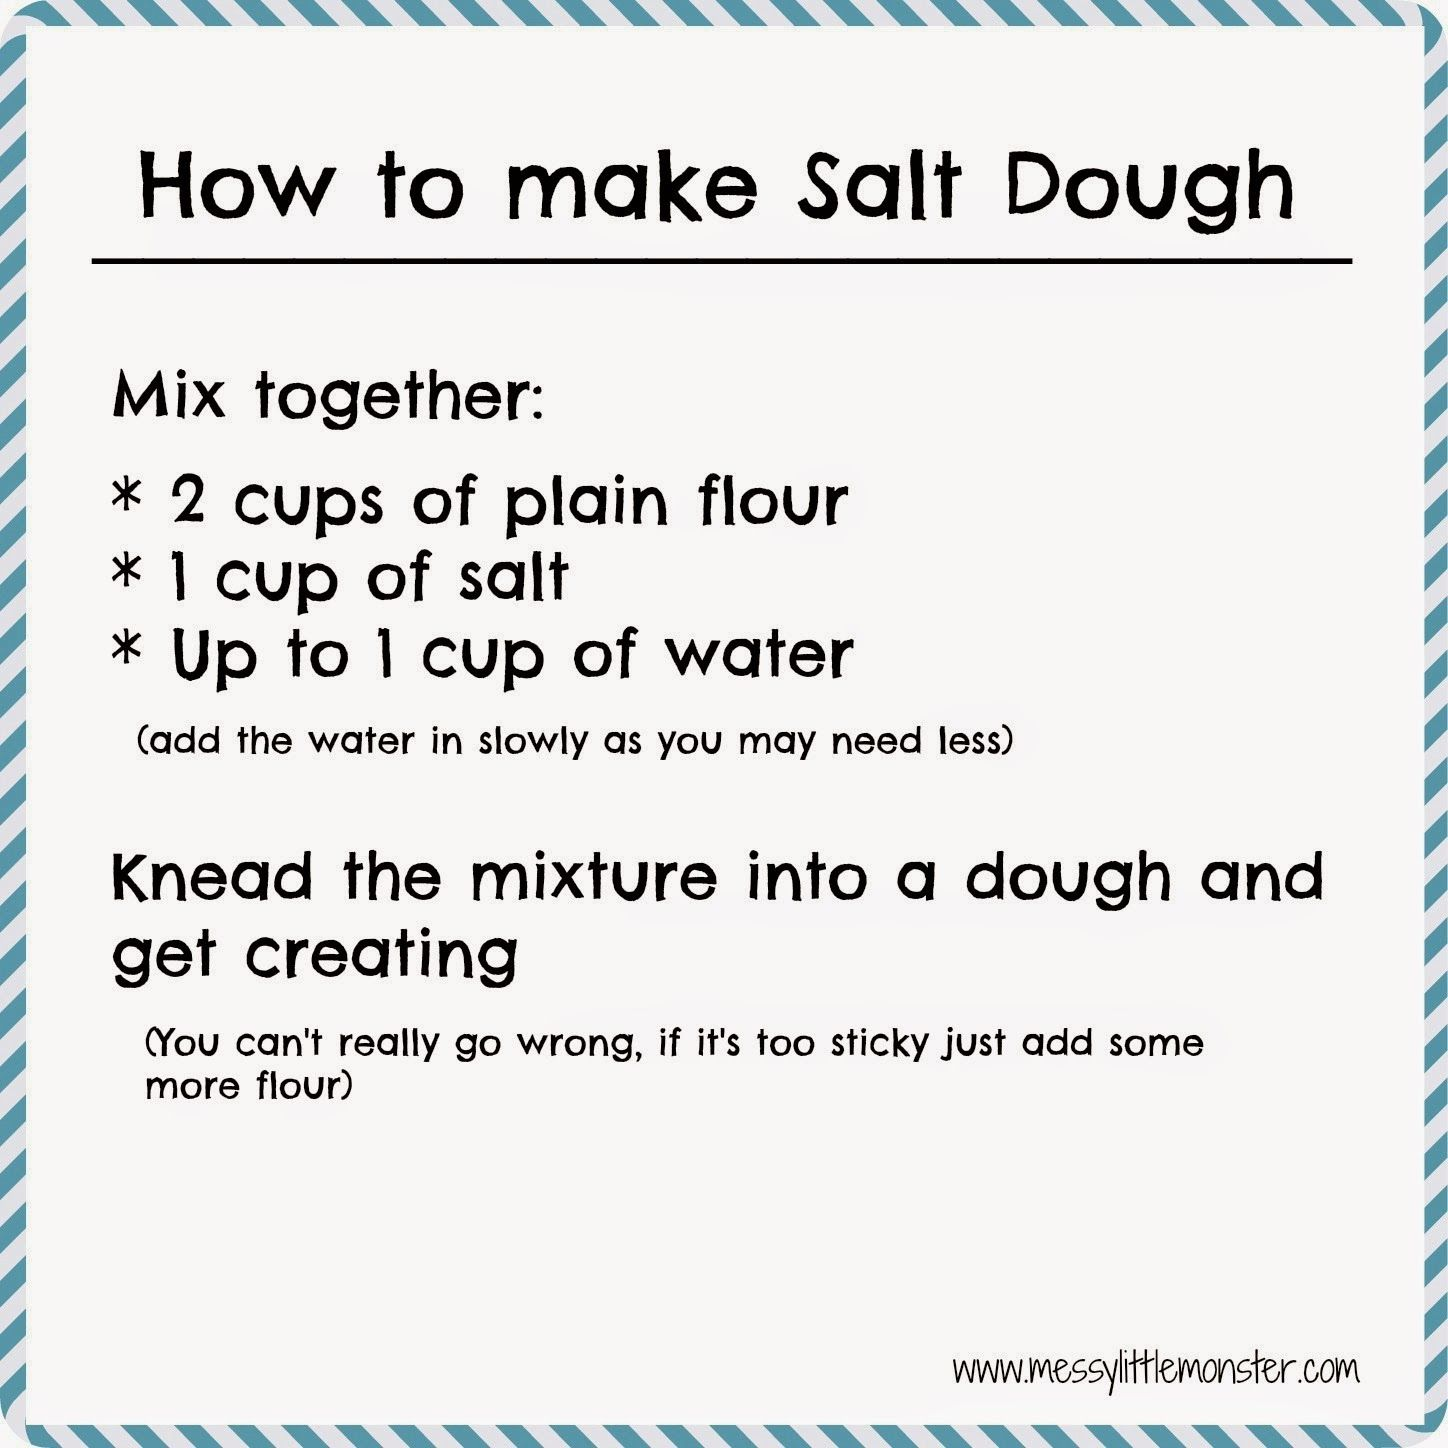 How To Make Salt Dough Printable Recipe Salt Dough Crafts Salt Dough Salt Dough Recipe